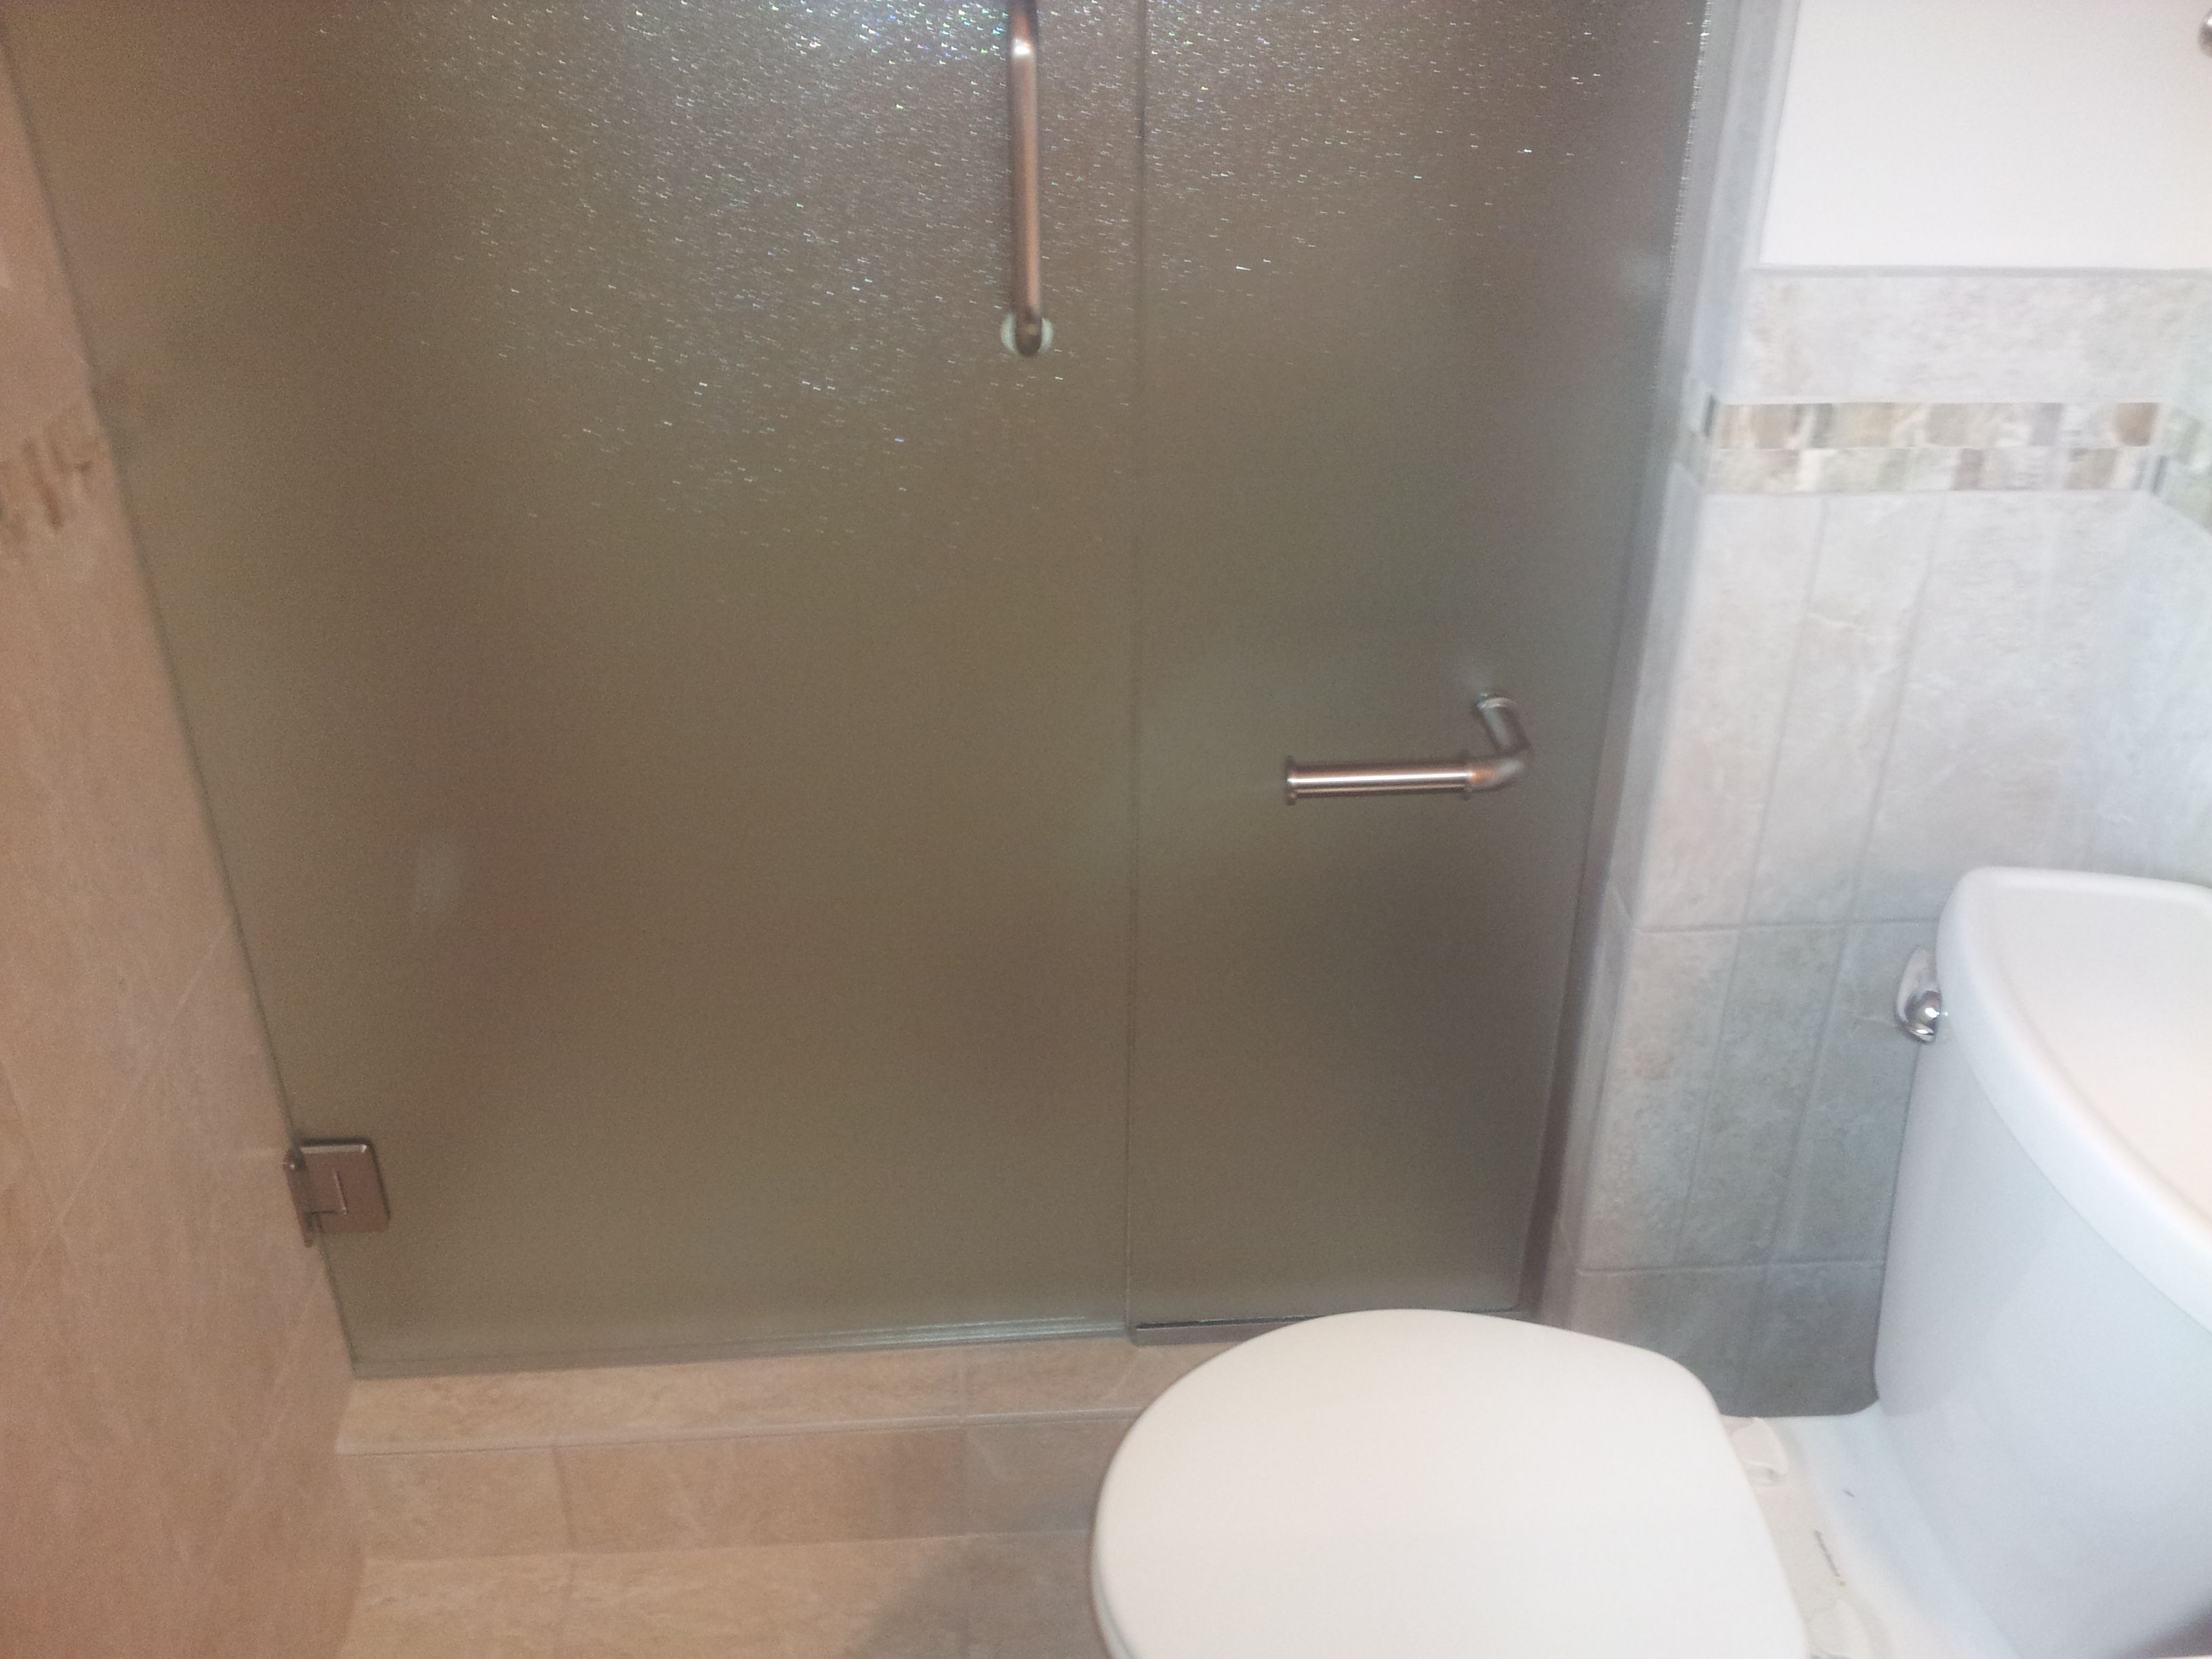 Charmant Frameless Rain Glass Enclosure With Toilet Paper Holder Mount On Panel